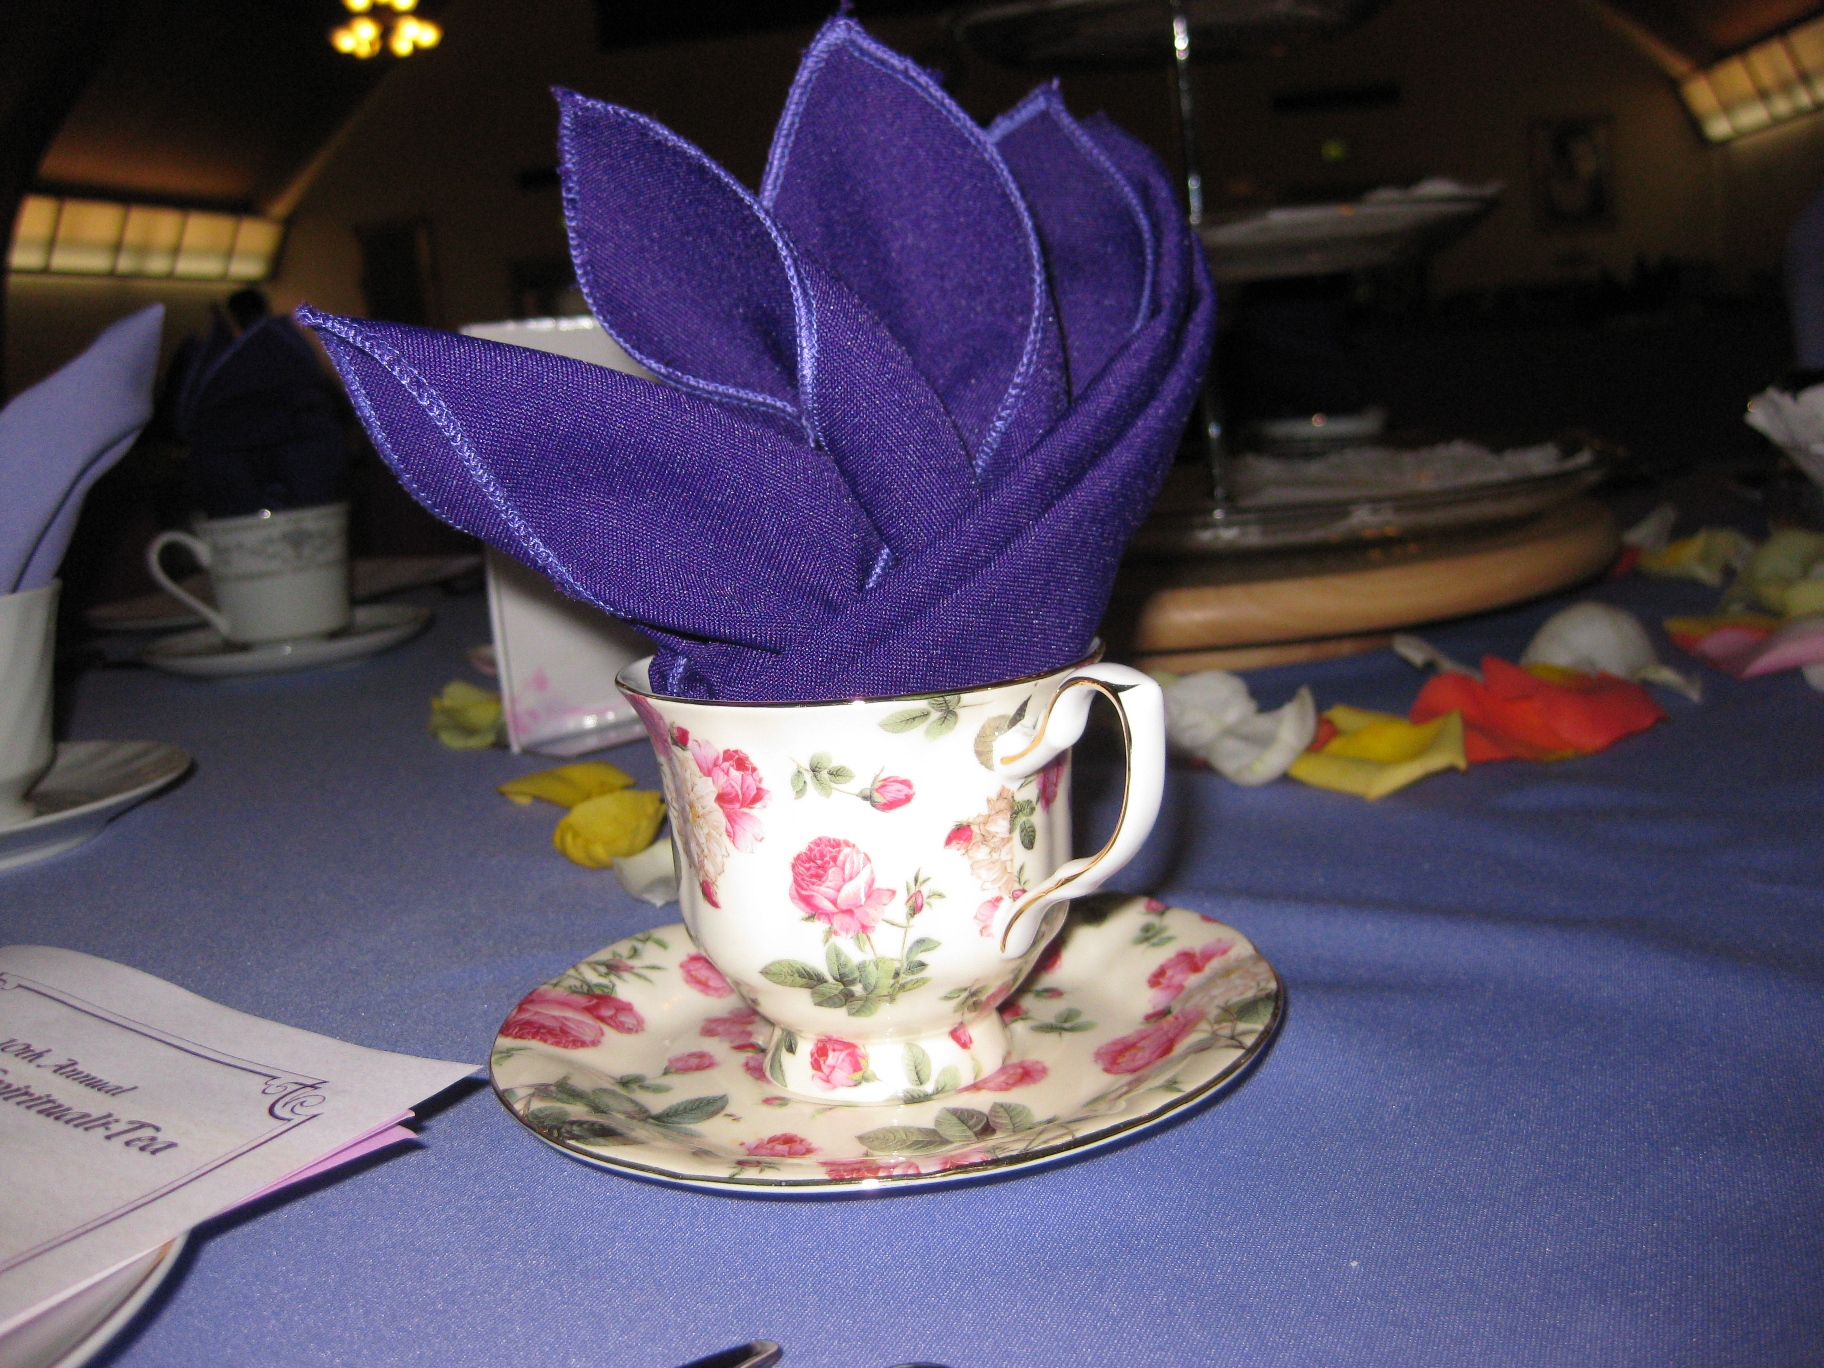 Our Lady's Luncheon Tea